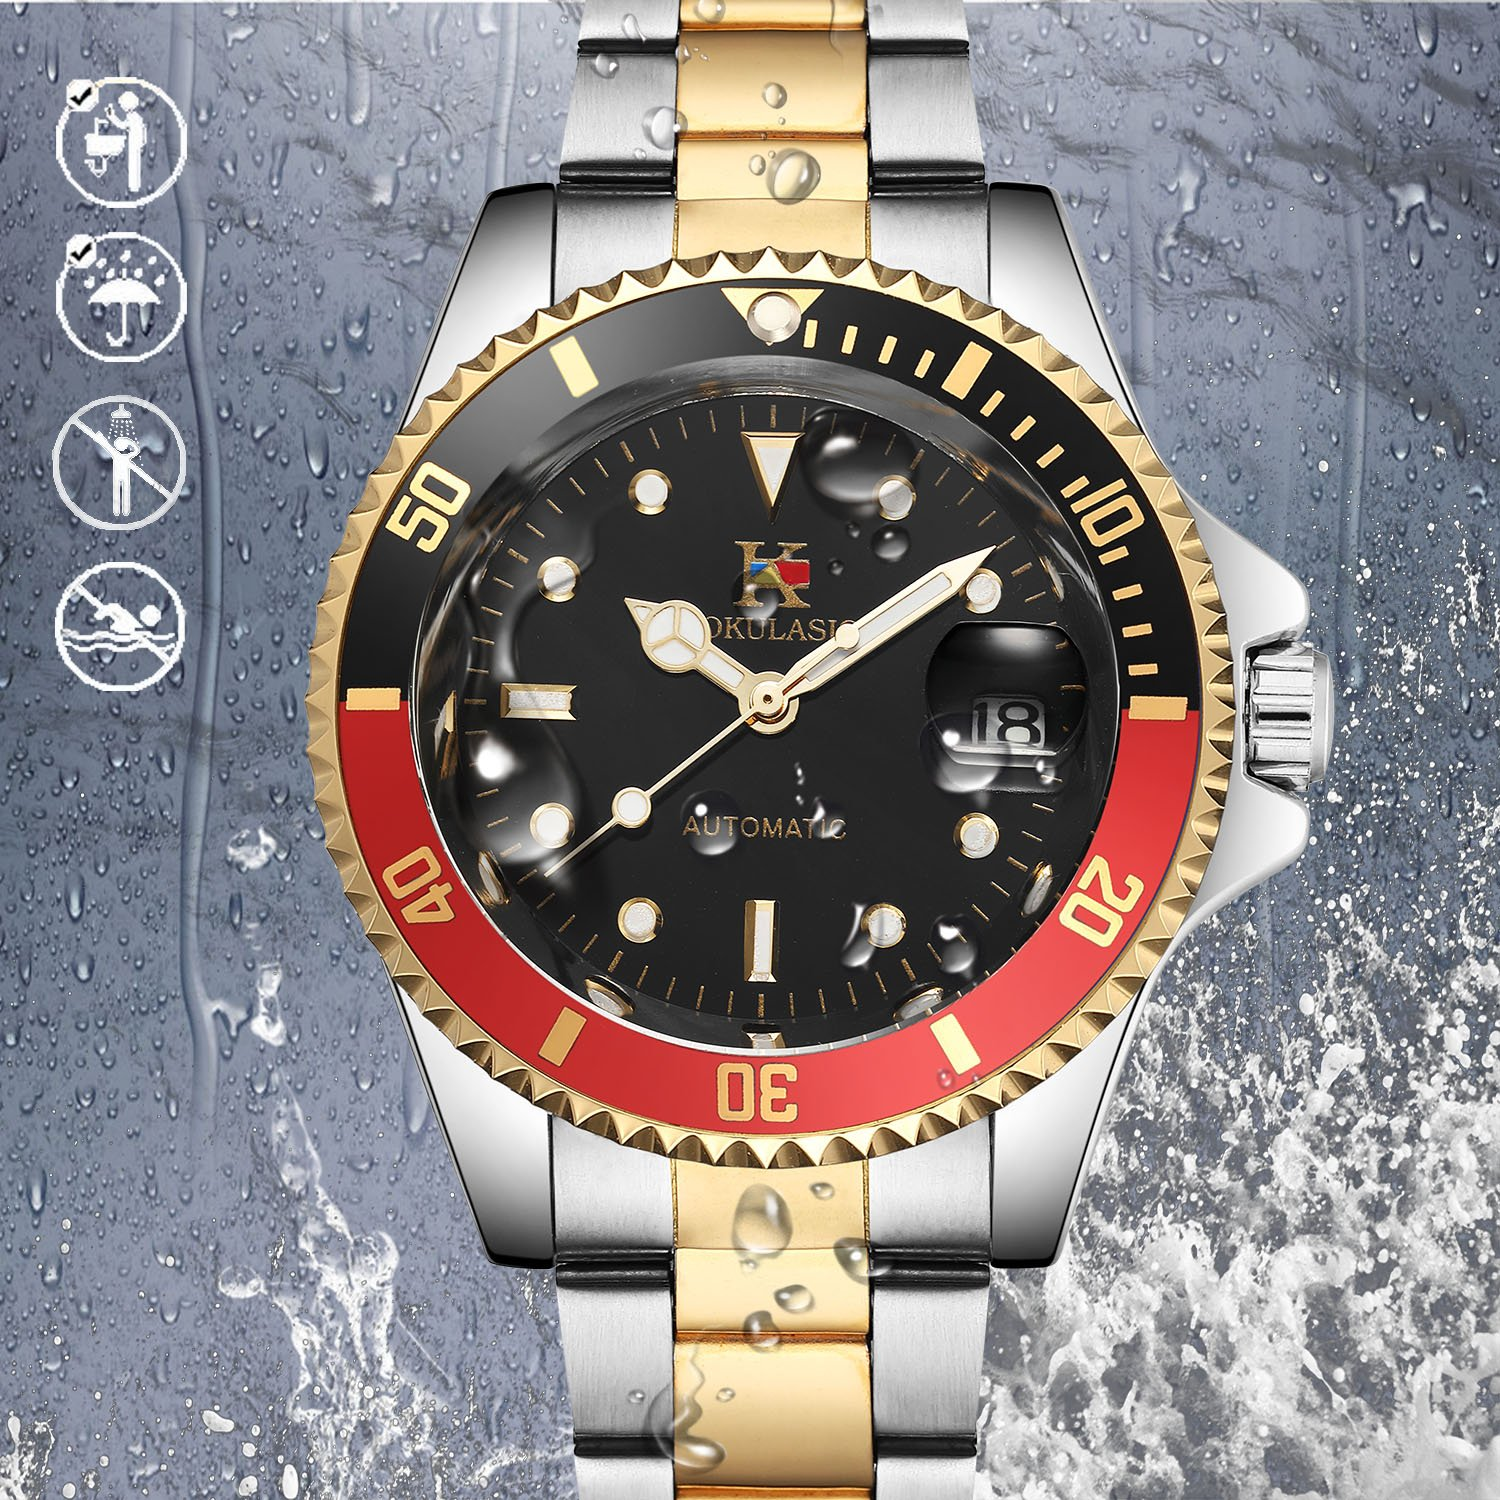 AOKULASIC Mens Automatic Self-Wind Wrist Watch with 100Ft Waterproof and Classic Date Displayer. (Black Red)